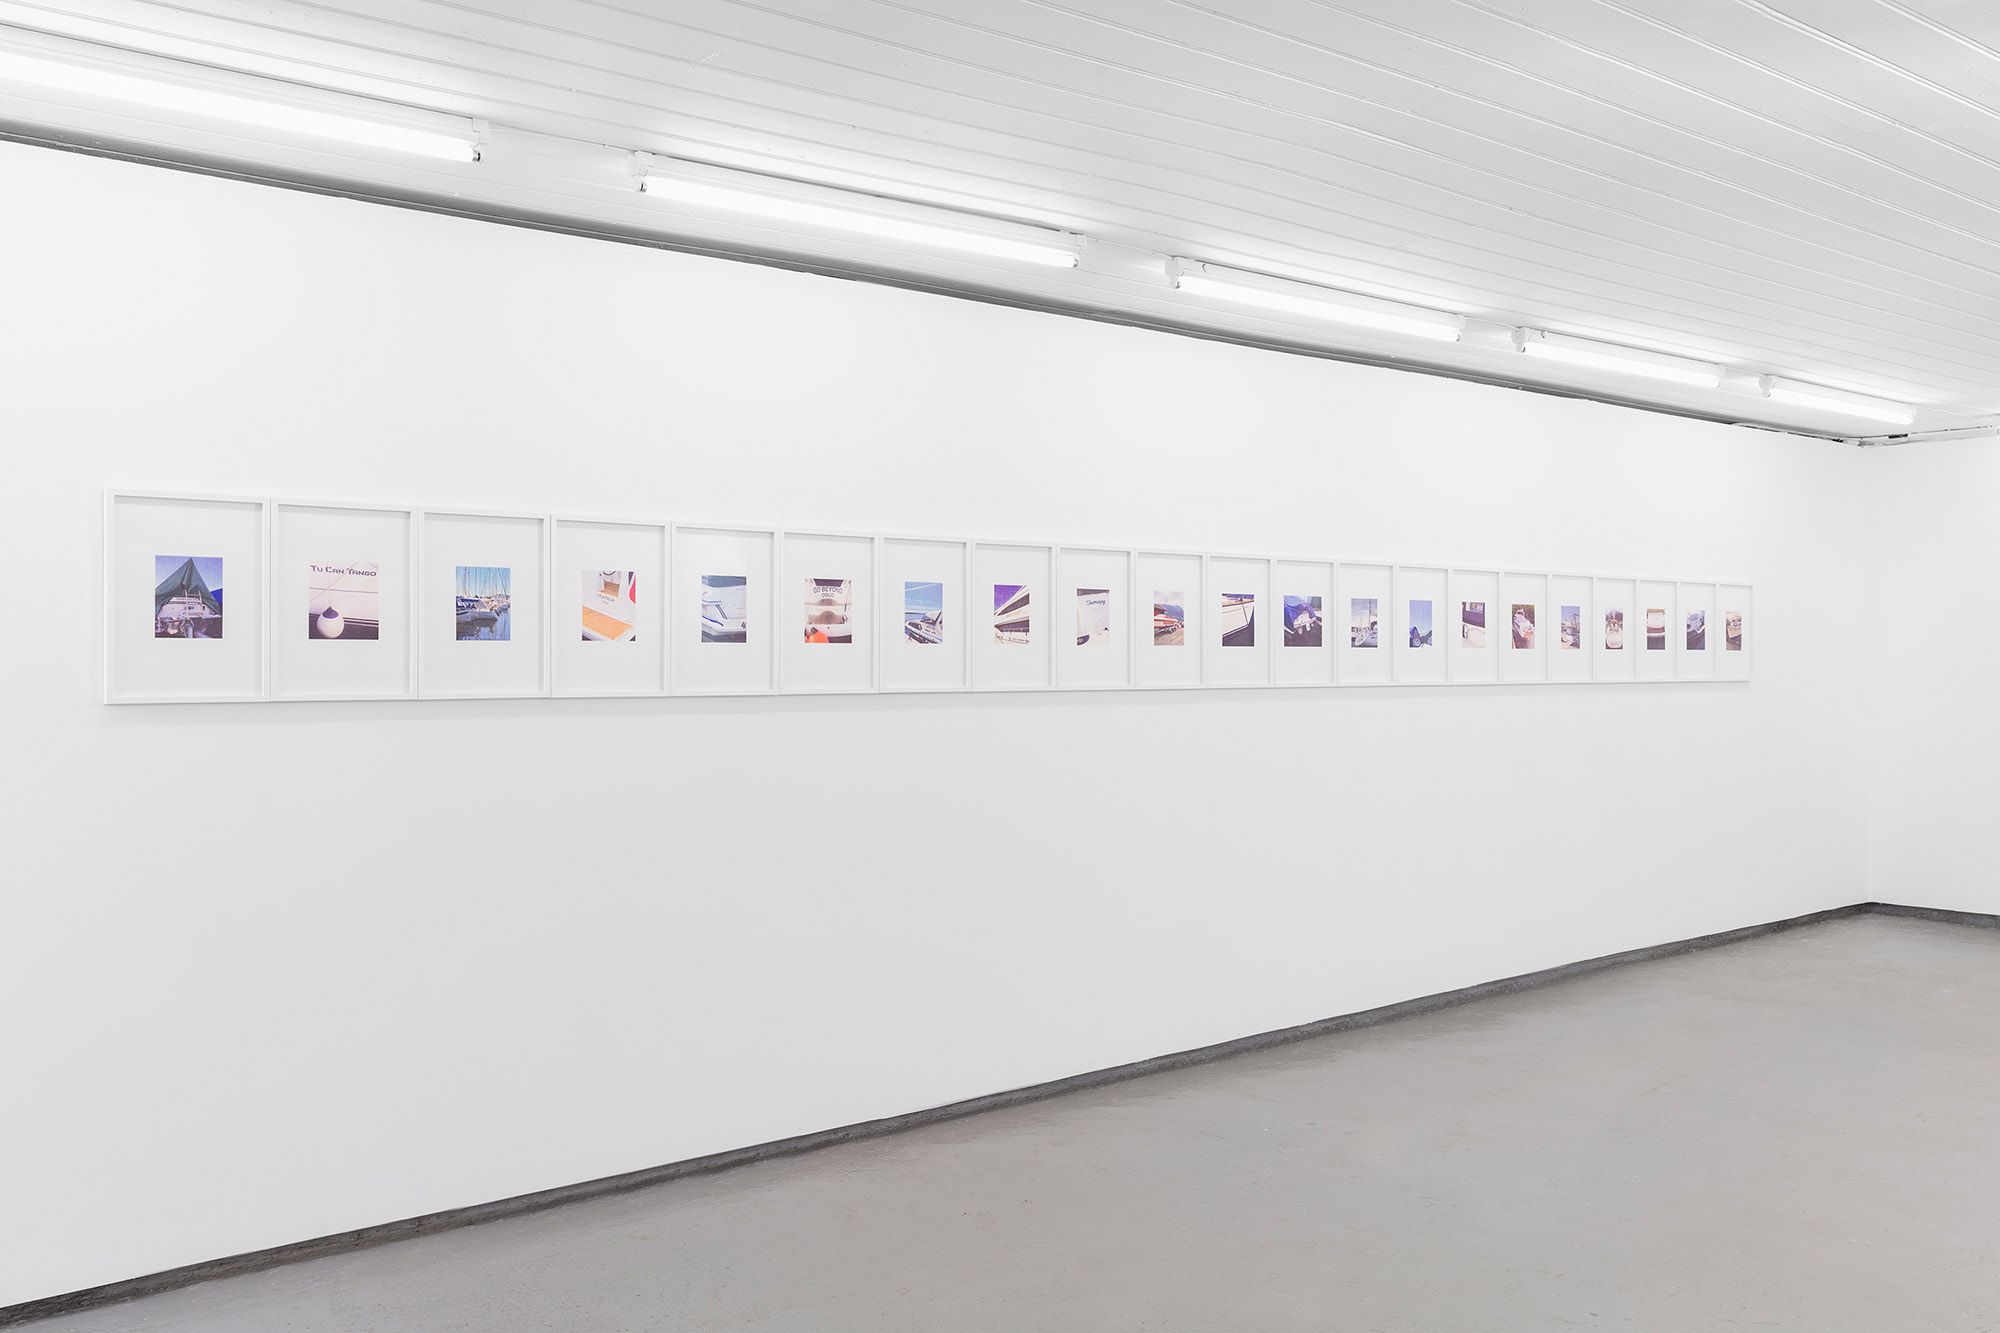 Andreas Meinich at MELK